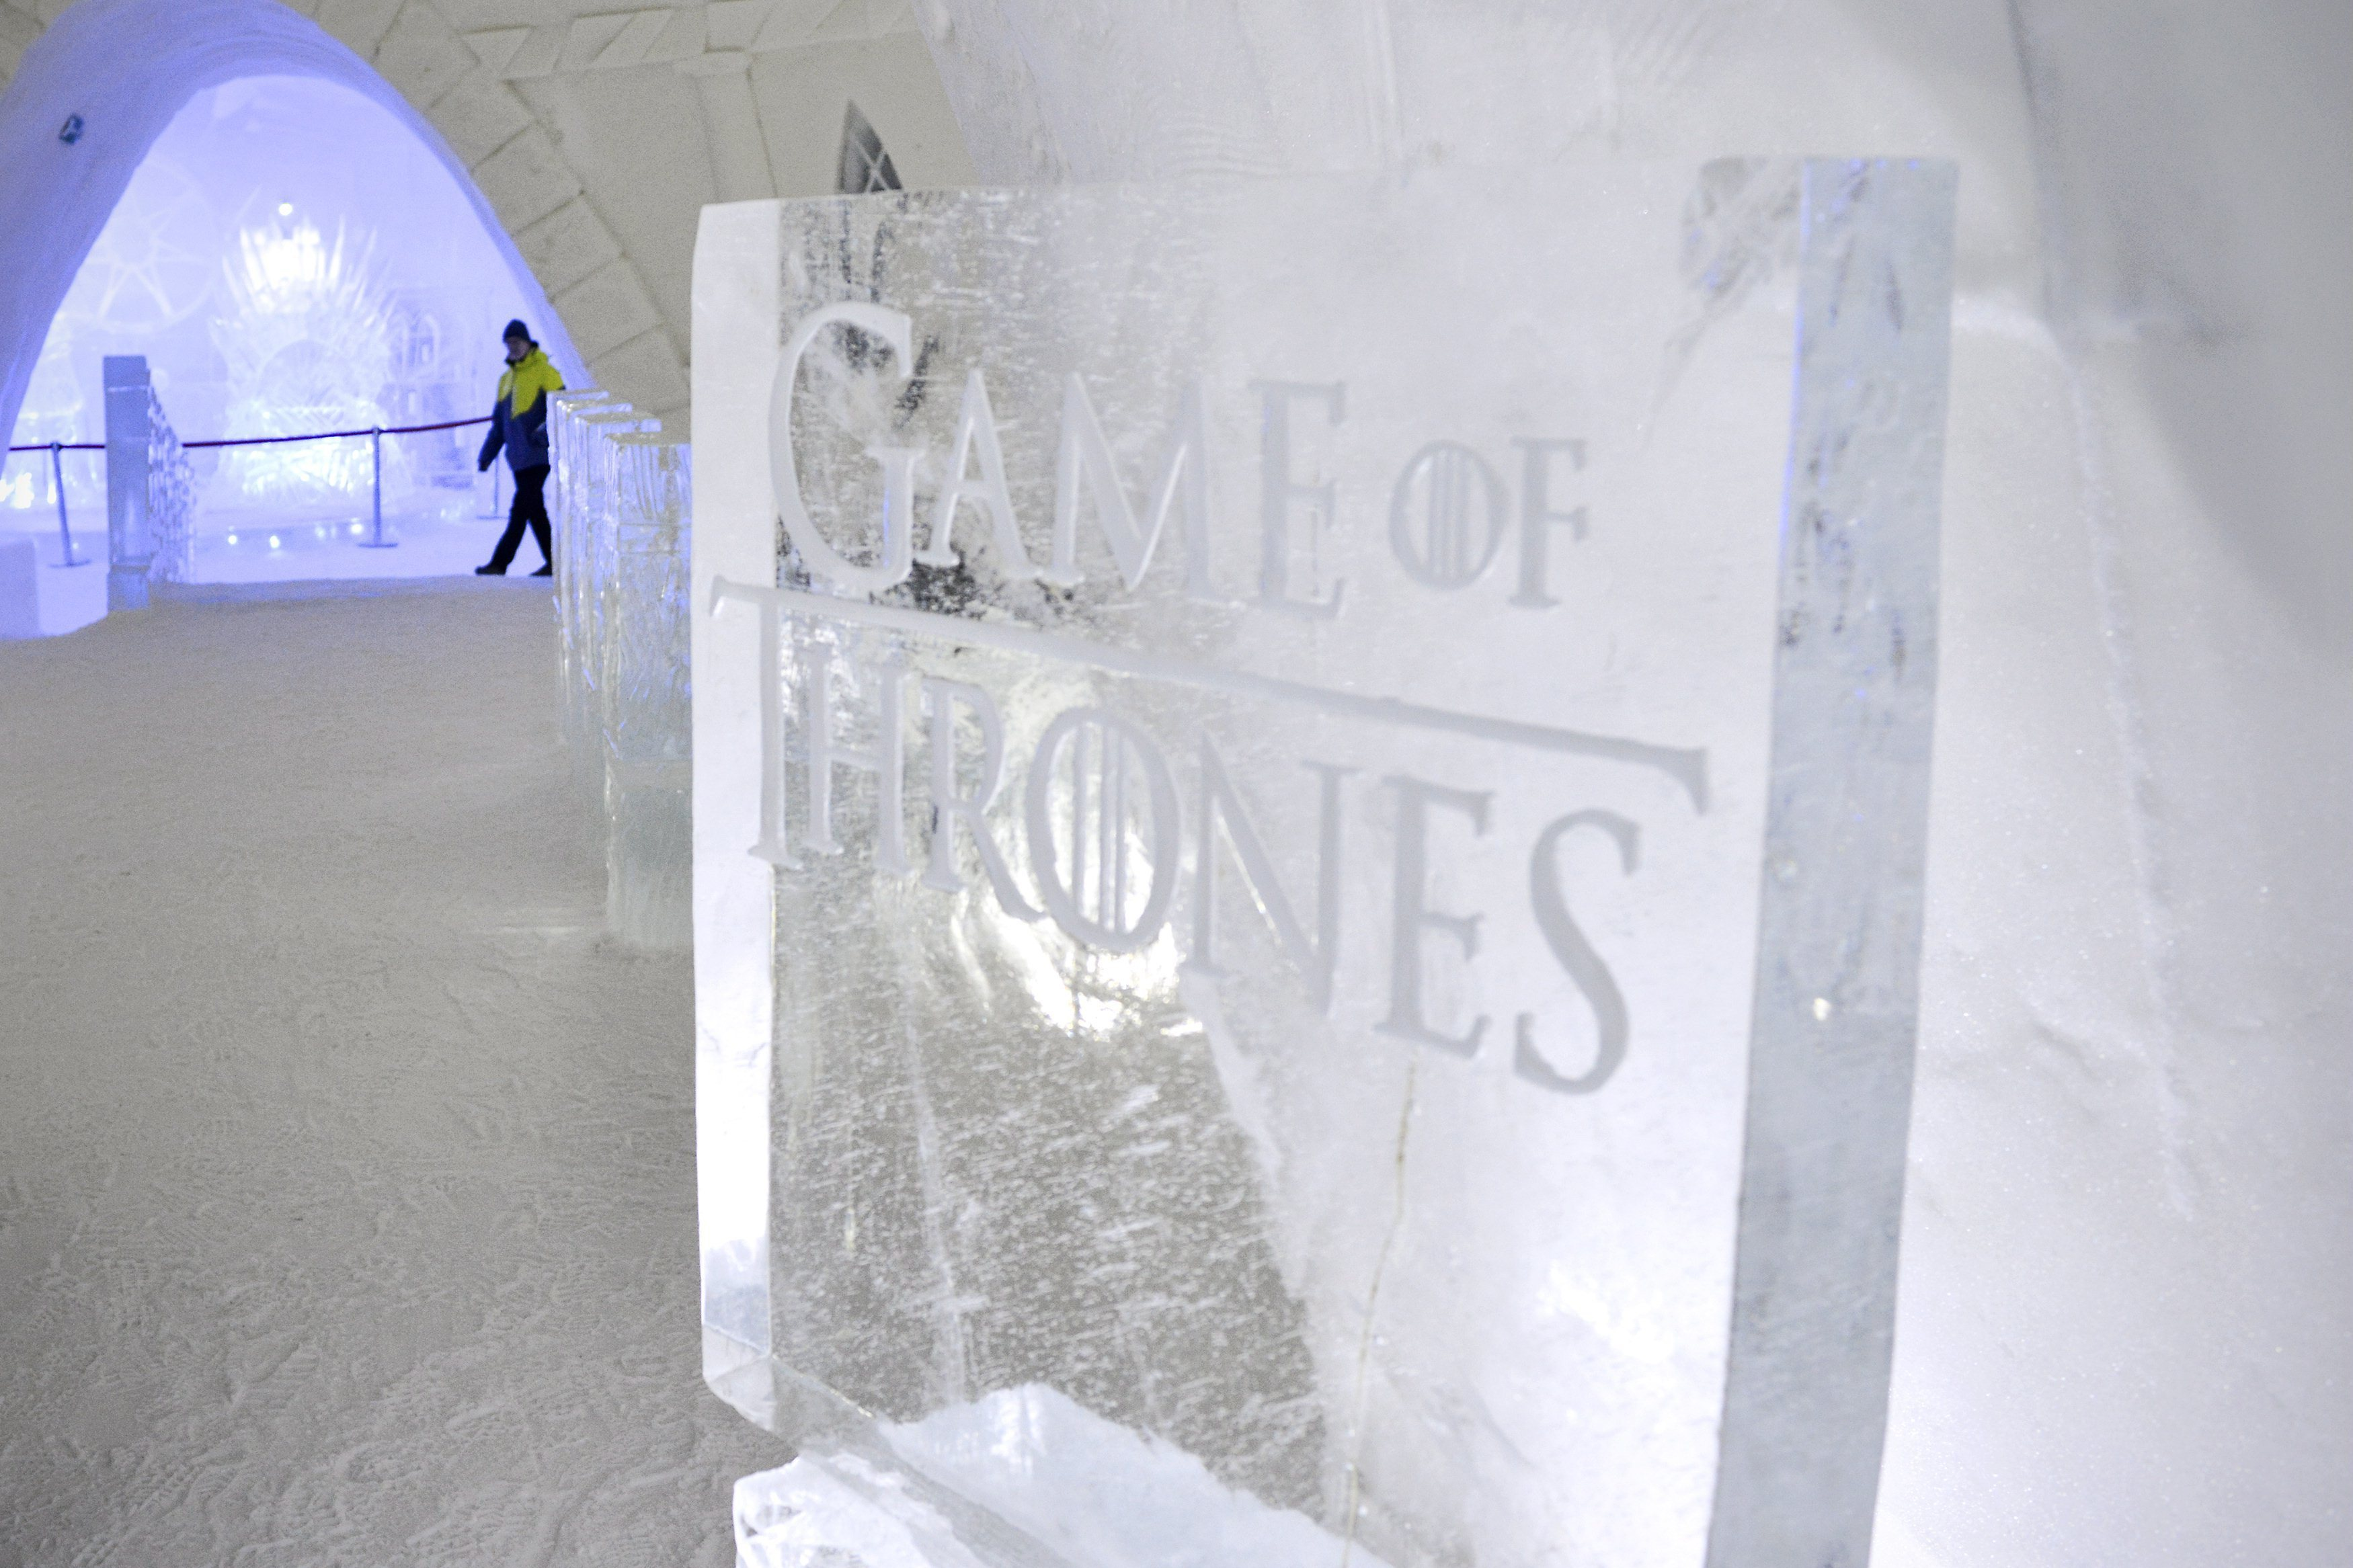 "A person  walks inside a  Game of Thrones-themed ice hotel in Kittila  Finnish Lapland on Sunday Jan. 14, 2018. A ""Game of Thrones""-themed ice hotel complete with a bar and a chapel for weddings has opened in northern Finland in a joint effort by a local hotel chain and the U.S. producers of the hit TV series. Lapland Hotels said Friday they chose ""Game of Thrones"" to be the theme for this season's Snow Village, an annual ice-and-snow construction project covering 20,000 square meters (24,000 sq. yards) in Kittila, 150 kilometers (93 miles) above the Arctic Circle.(Aku H'yrynen/Lehtikuva via AP)"